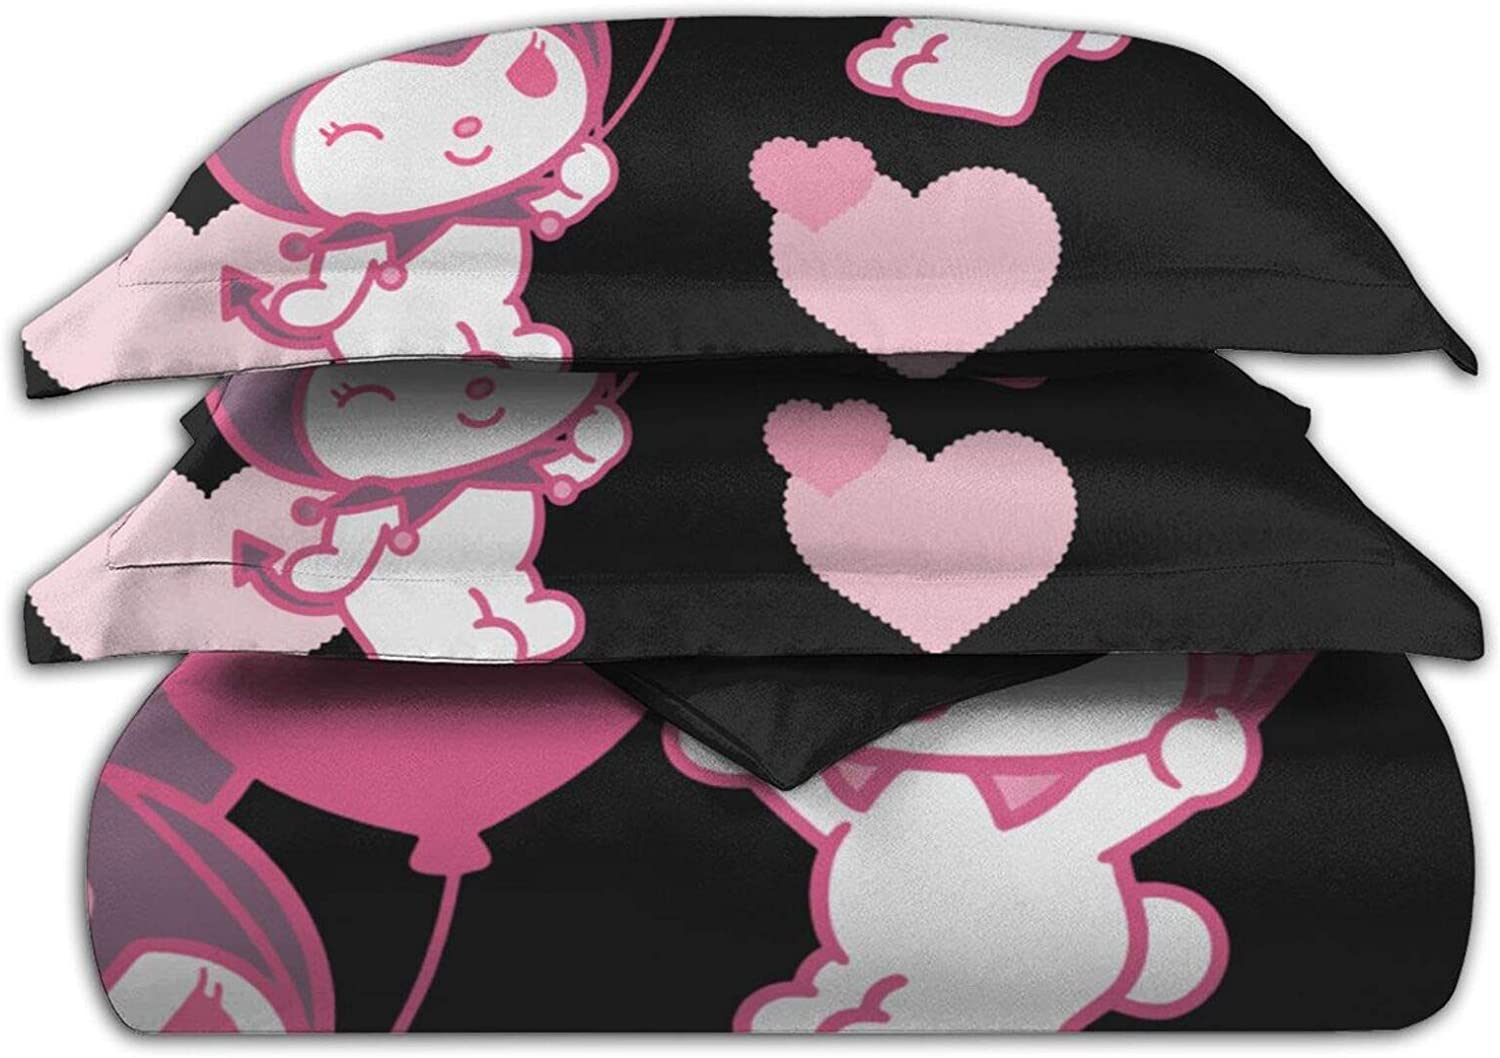 Dawiine Kuromi My Melody Bedspread Quilt Cover 3 Pieces of Bedding Personalized Super Soft Sheet 86inch X70inch